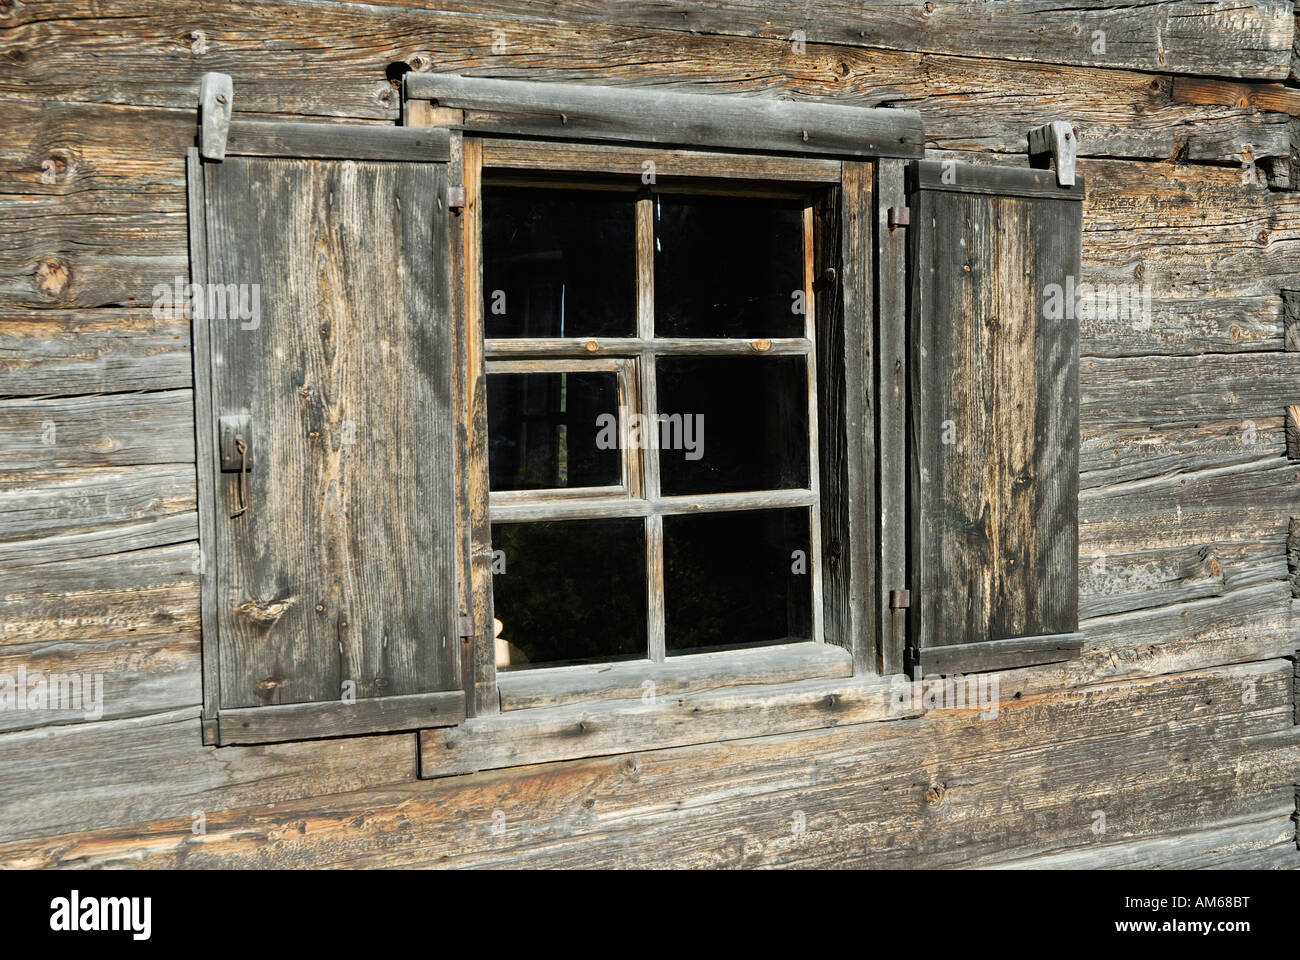 Window of timber farmhouse originally located in south Tyrol, reconstructed at the farmhous museum Breitenbach Austria - Stock Image